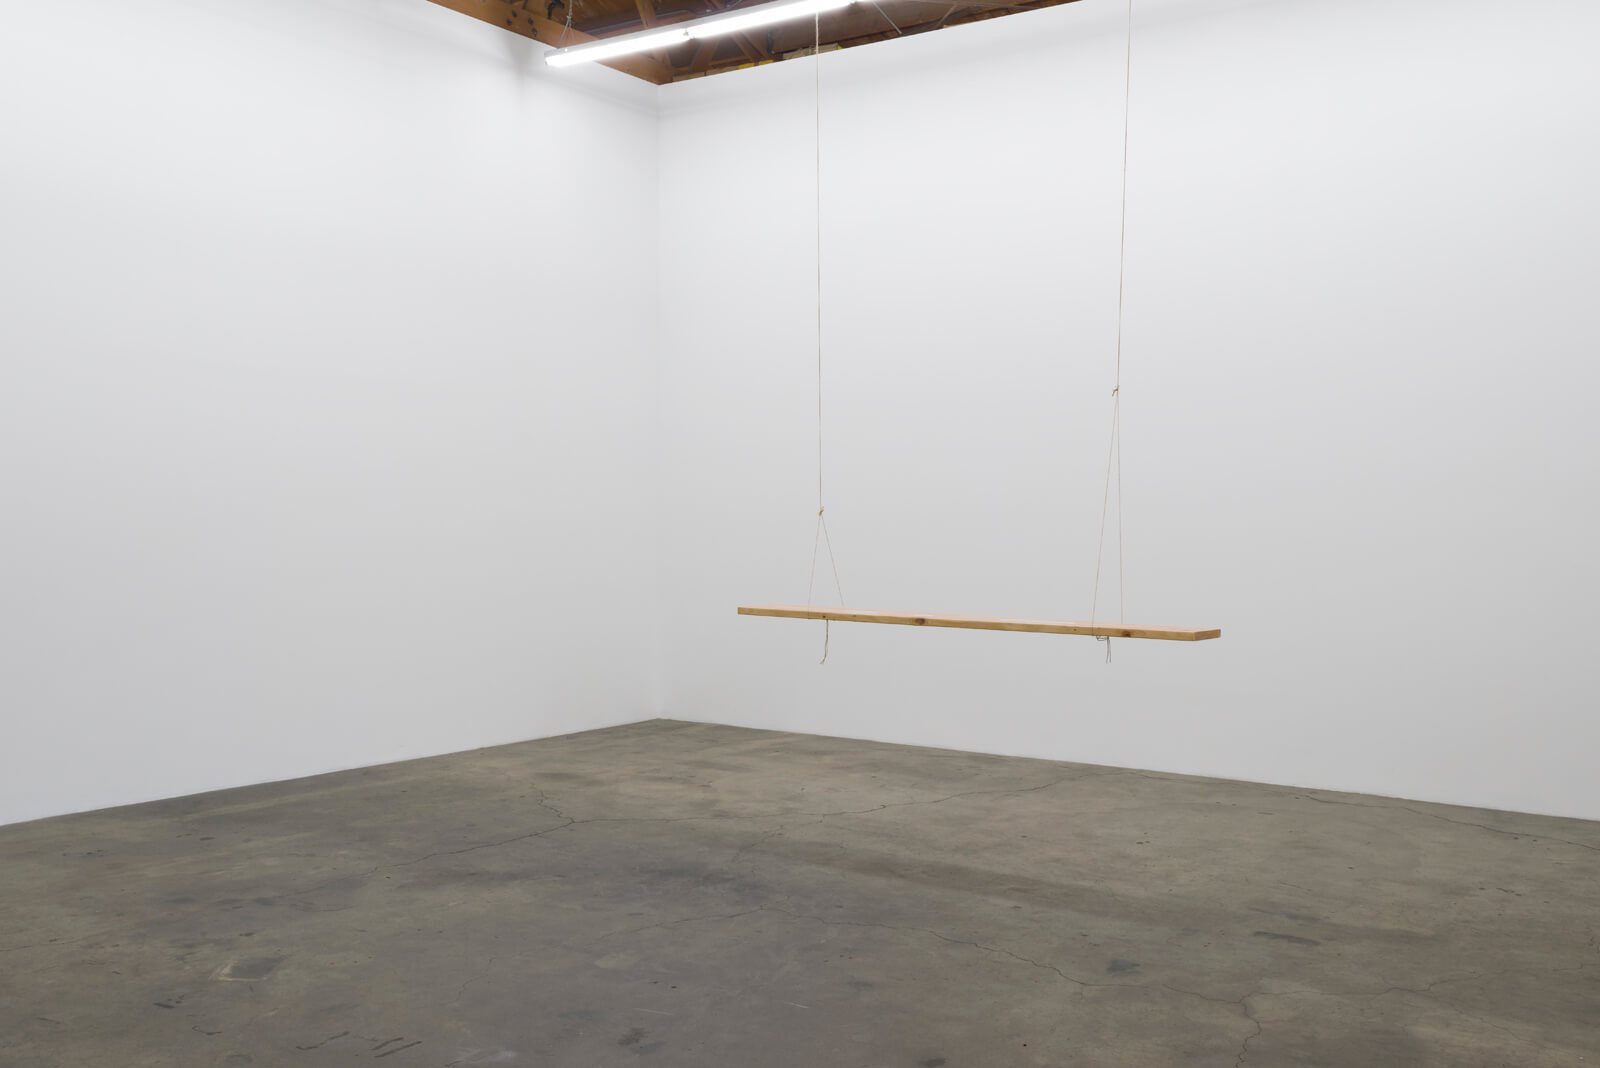 _a_davide-balula-broken-things-float-faster-installation-view-2016